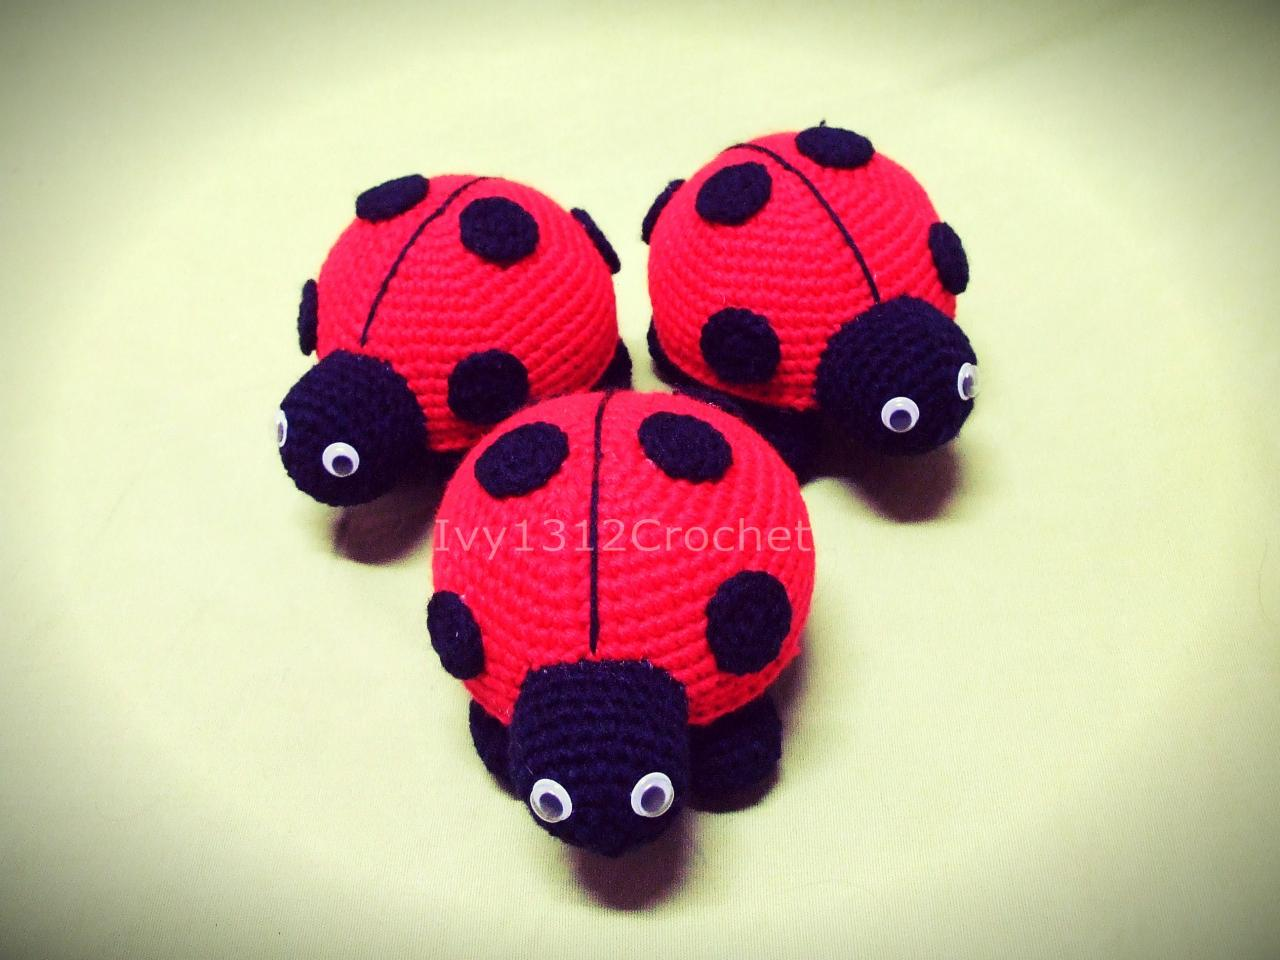 crochet baby handmade lovely ladybug rattle toy doll gifts|rattle ... | 960x1280